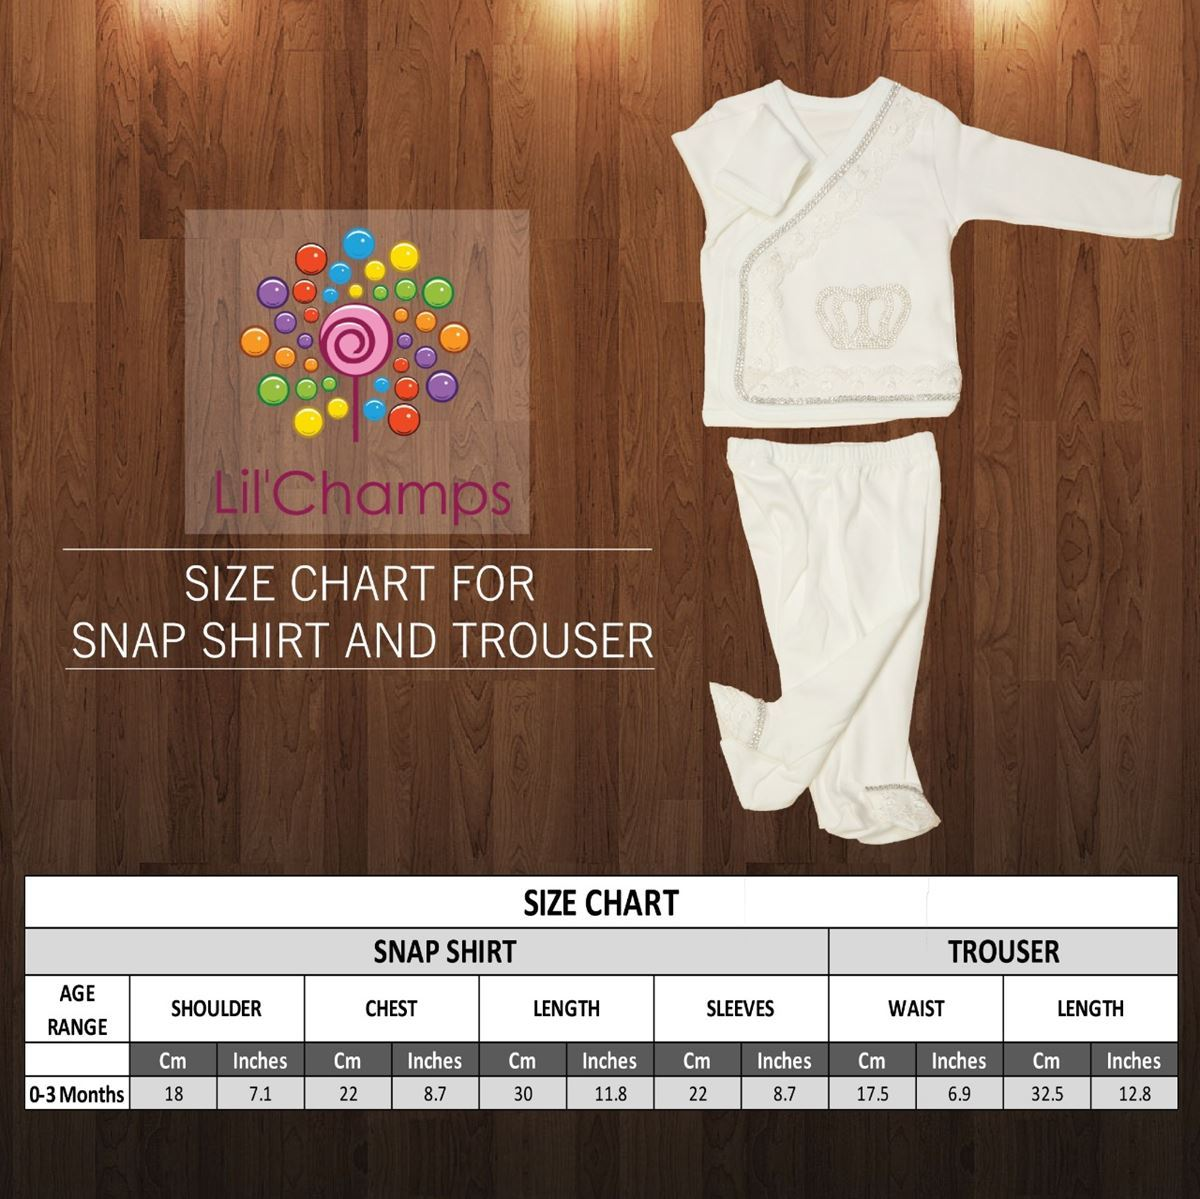 Size Chart - Shirt & Trouser For boys - Lilchamps